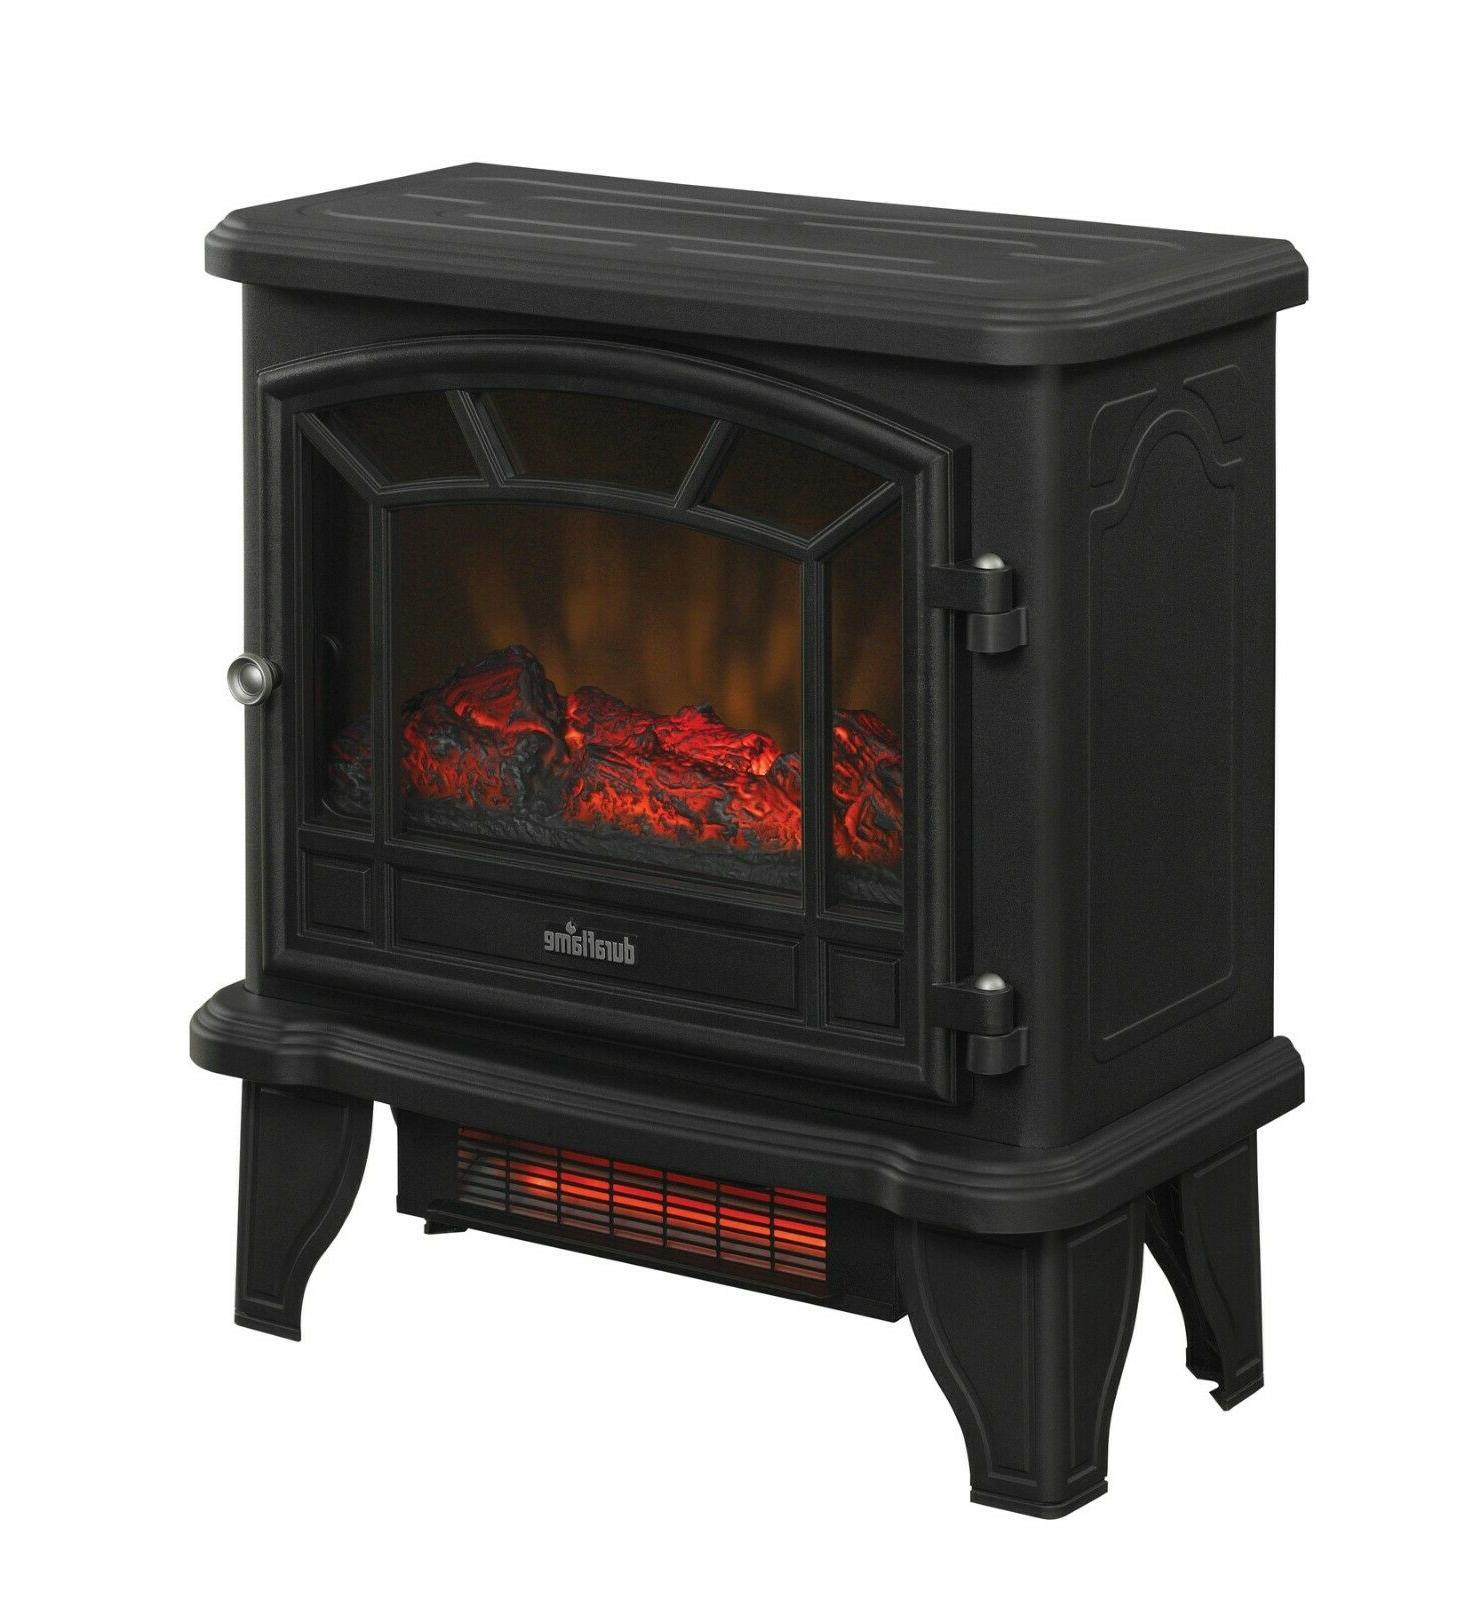 Infrared Stove 5200